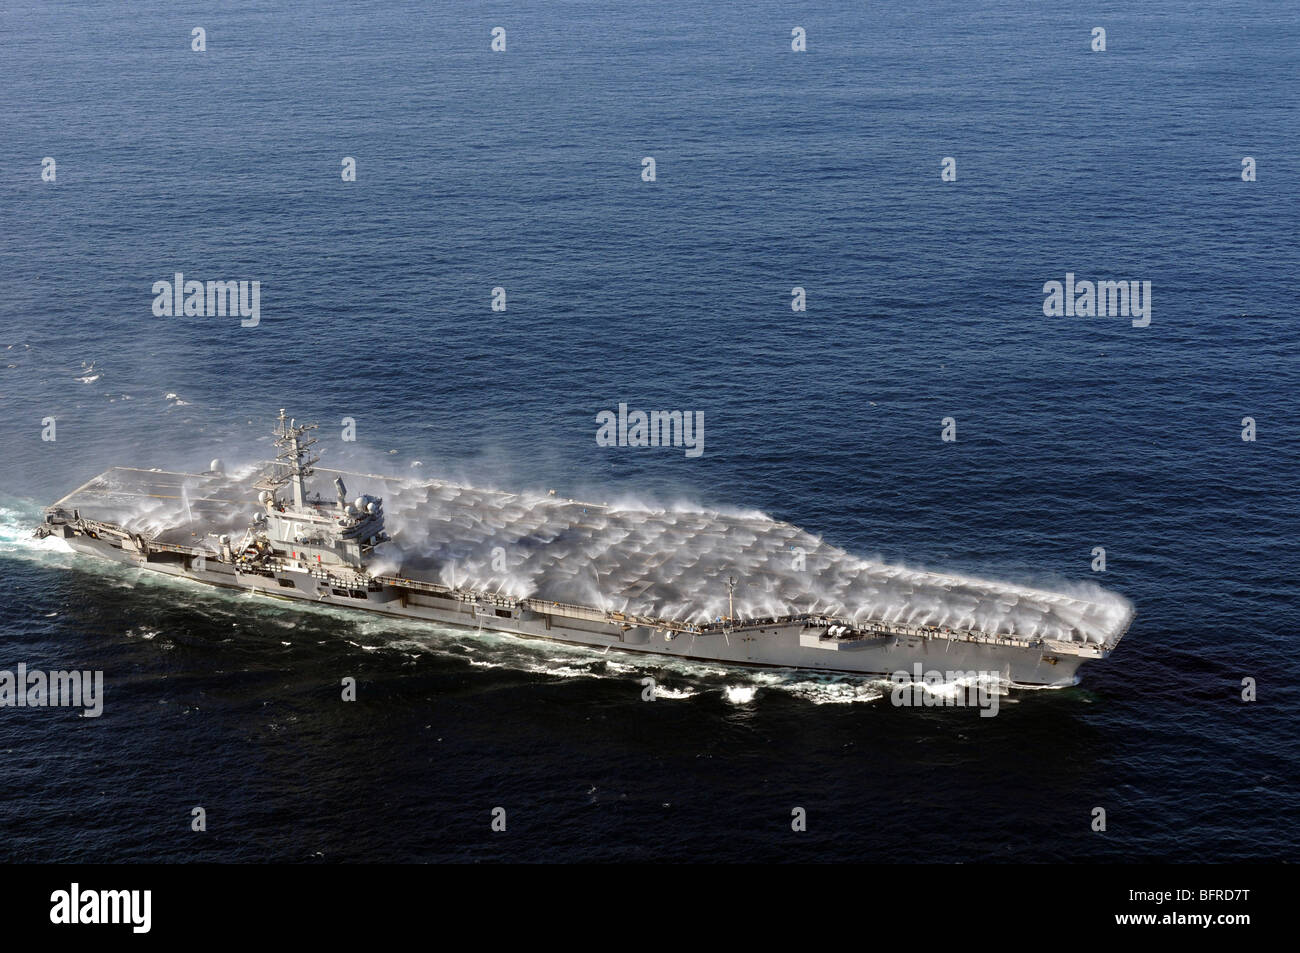 Countermeasure wash down sprinklers activated on the aircraft carrier USS Ronald Reagan. - Stock Image